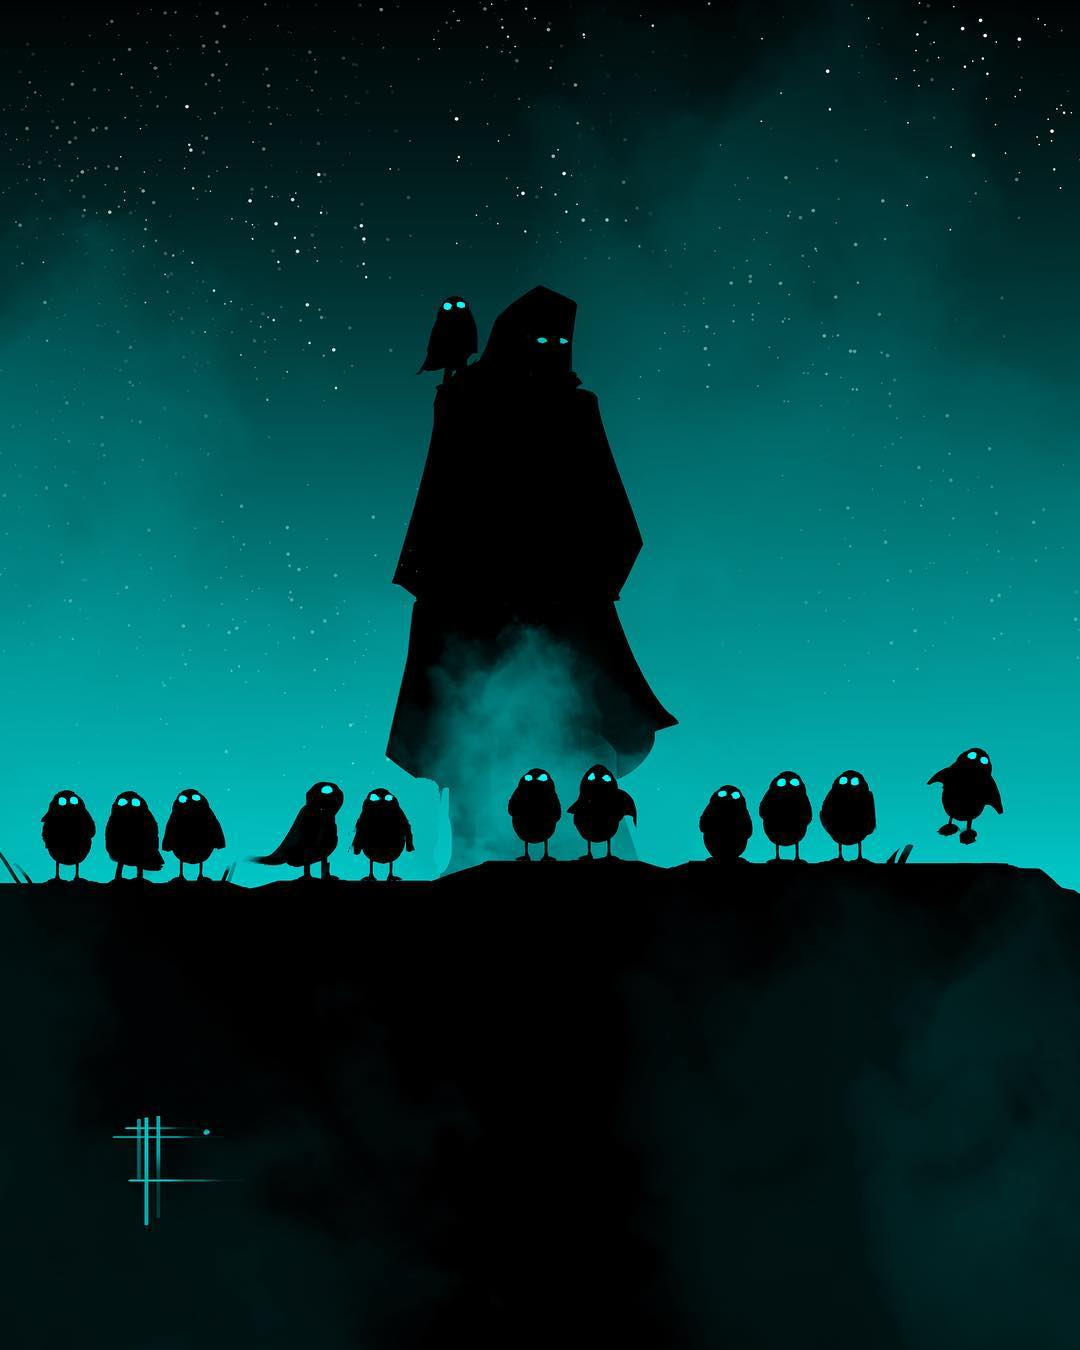 Luke & The Porgs by Eli Hyder